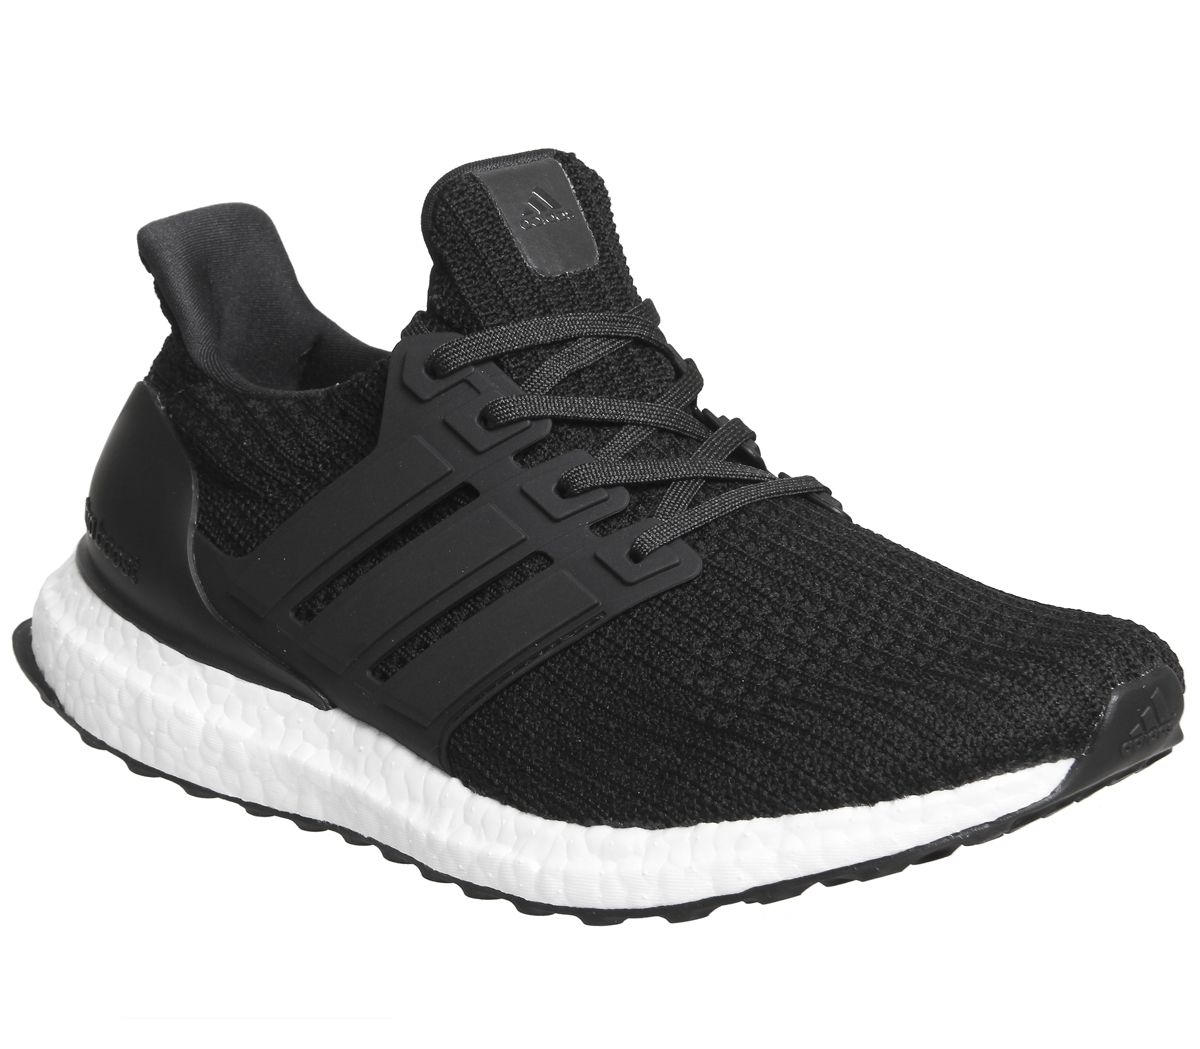 e18f25f69 adidas Ultraboost Ultra Boost Trainers Black White - Unisex Sports